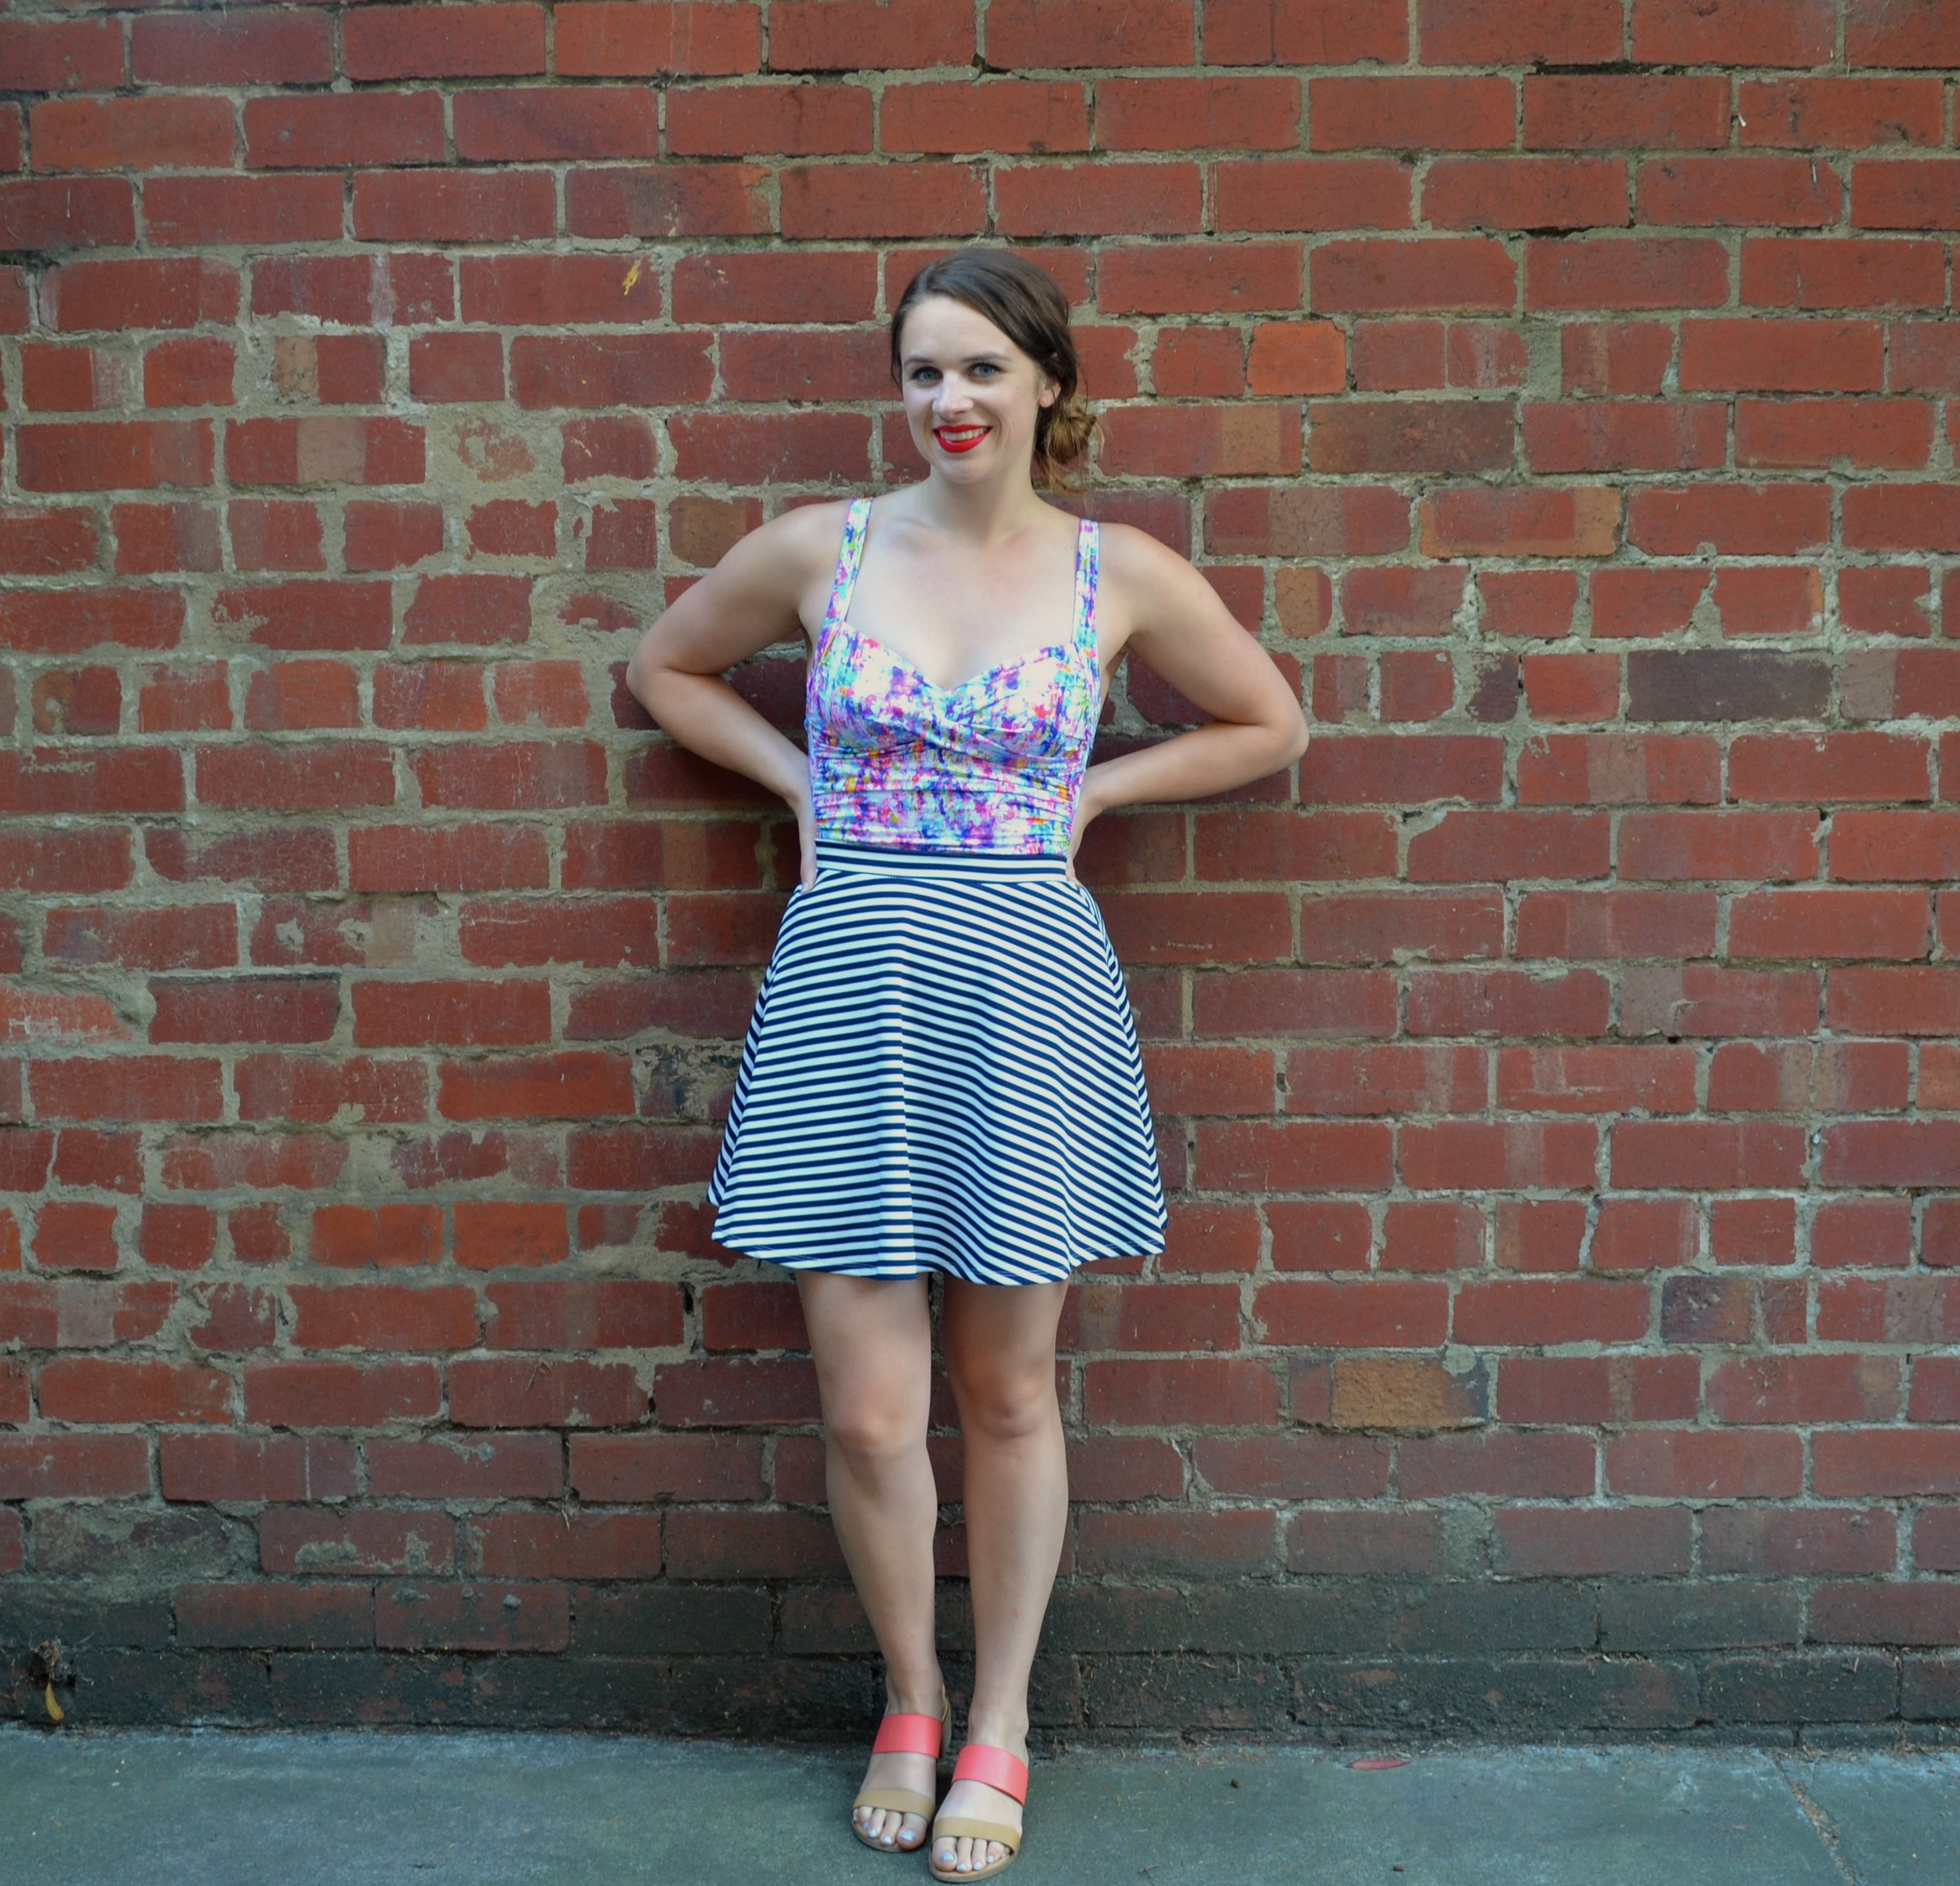 swimsuit-skirt-brick-wall